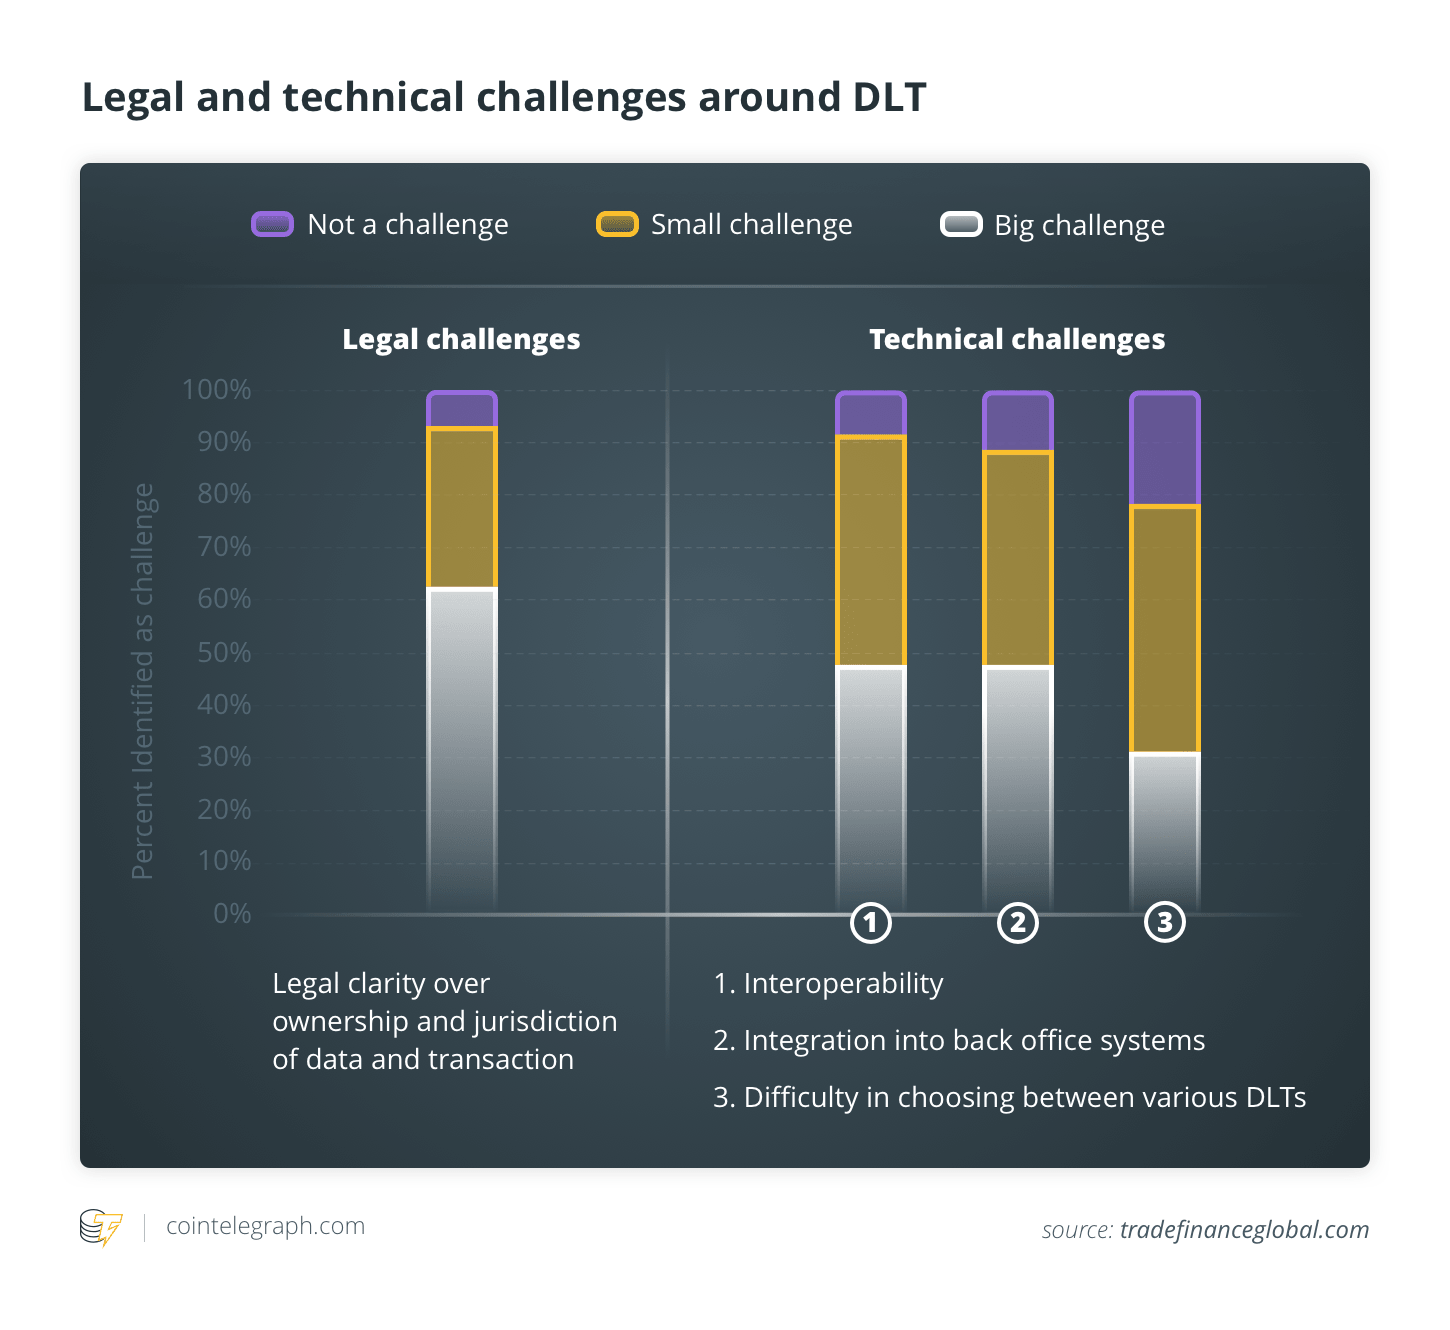 Legal and technical challenges around DLT